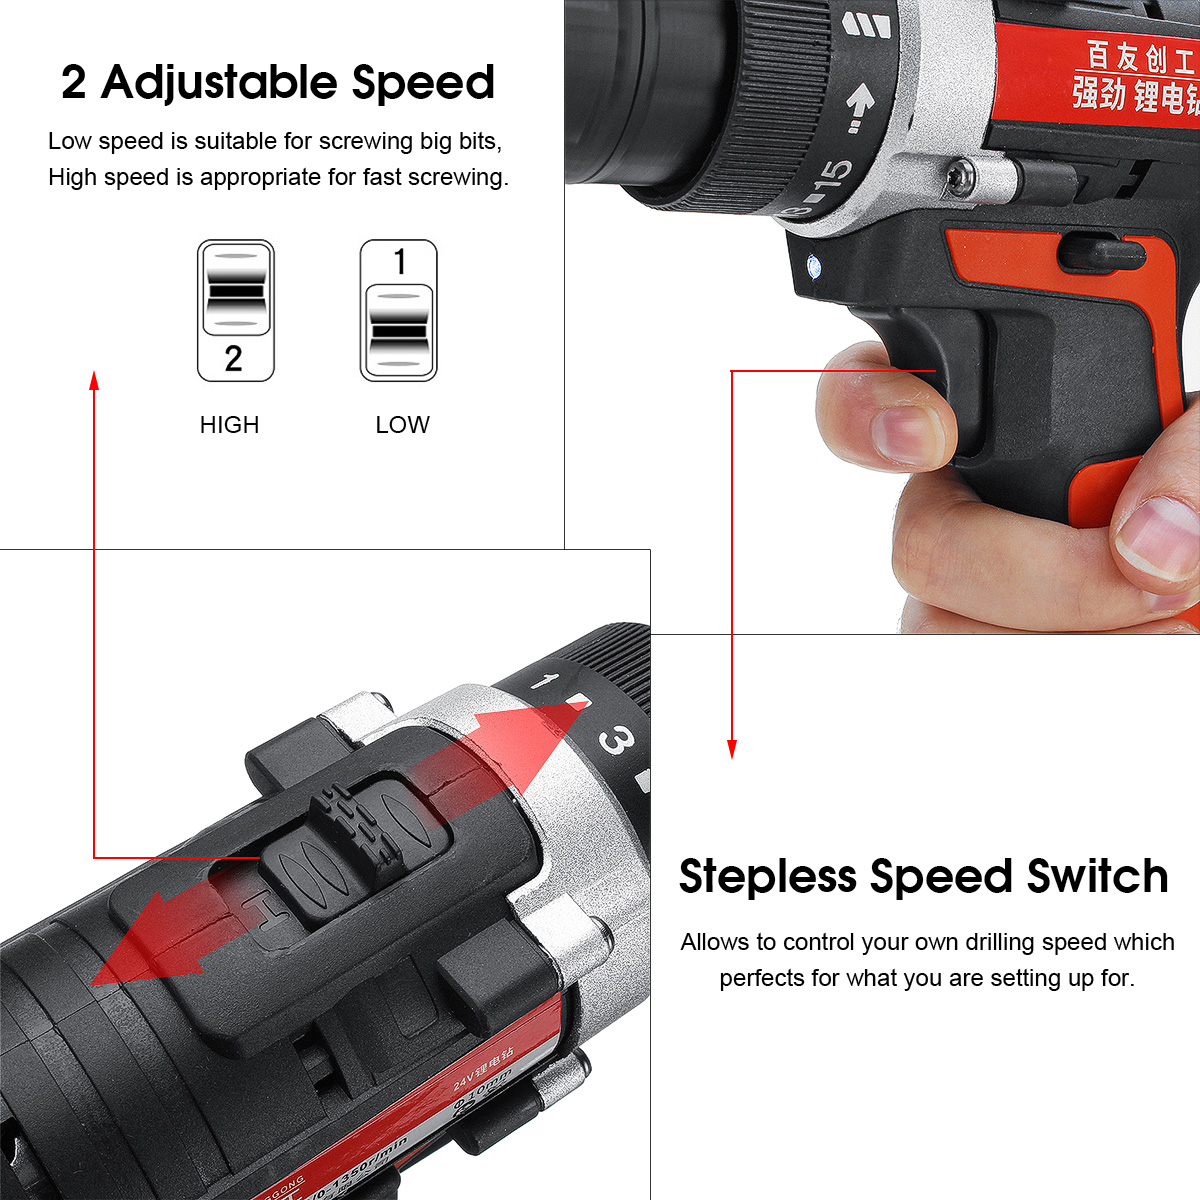 Raitool 12V/24V Lithium Battery Power Drills Cordless Rechargeable 2 Speed Electric Drill